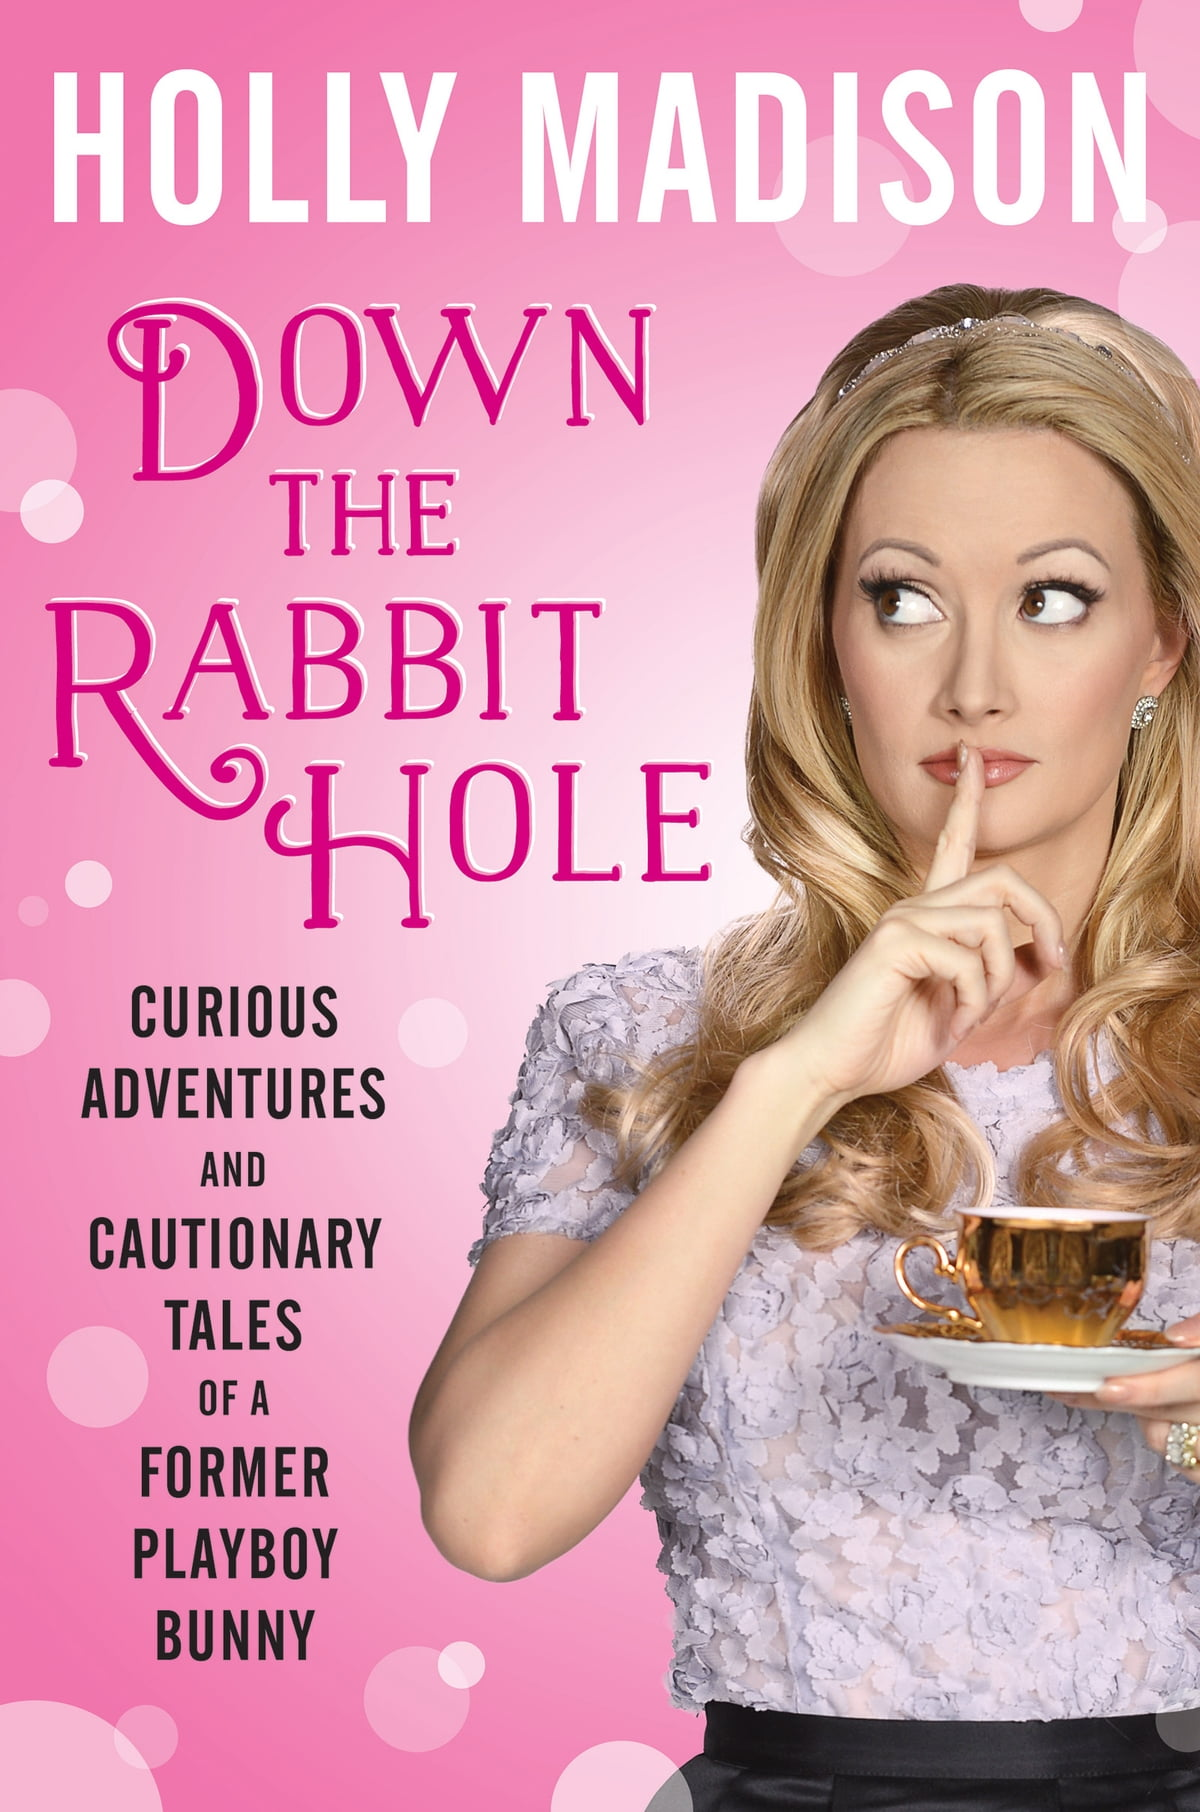 Down The Rabbit Hole  Curious Adventures And Cautionary Tales Of A Former  Playboy Bunny Ebook